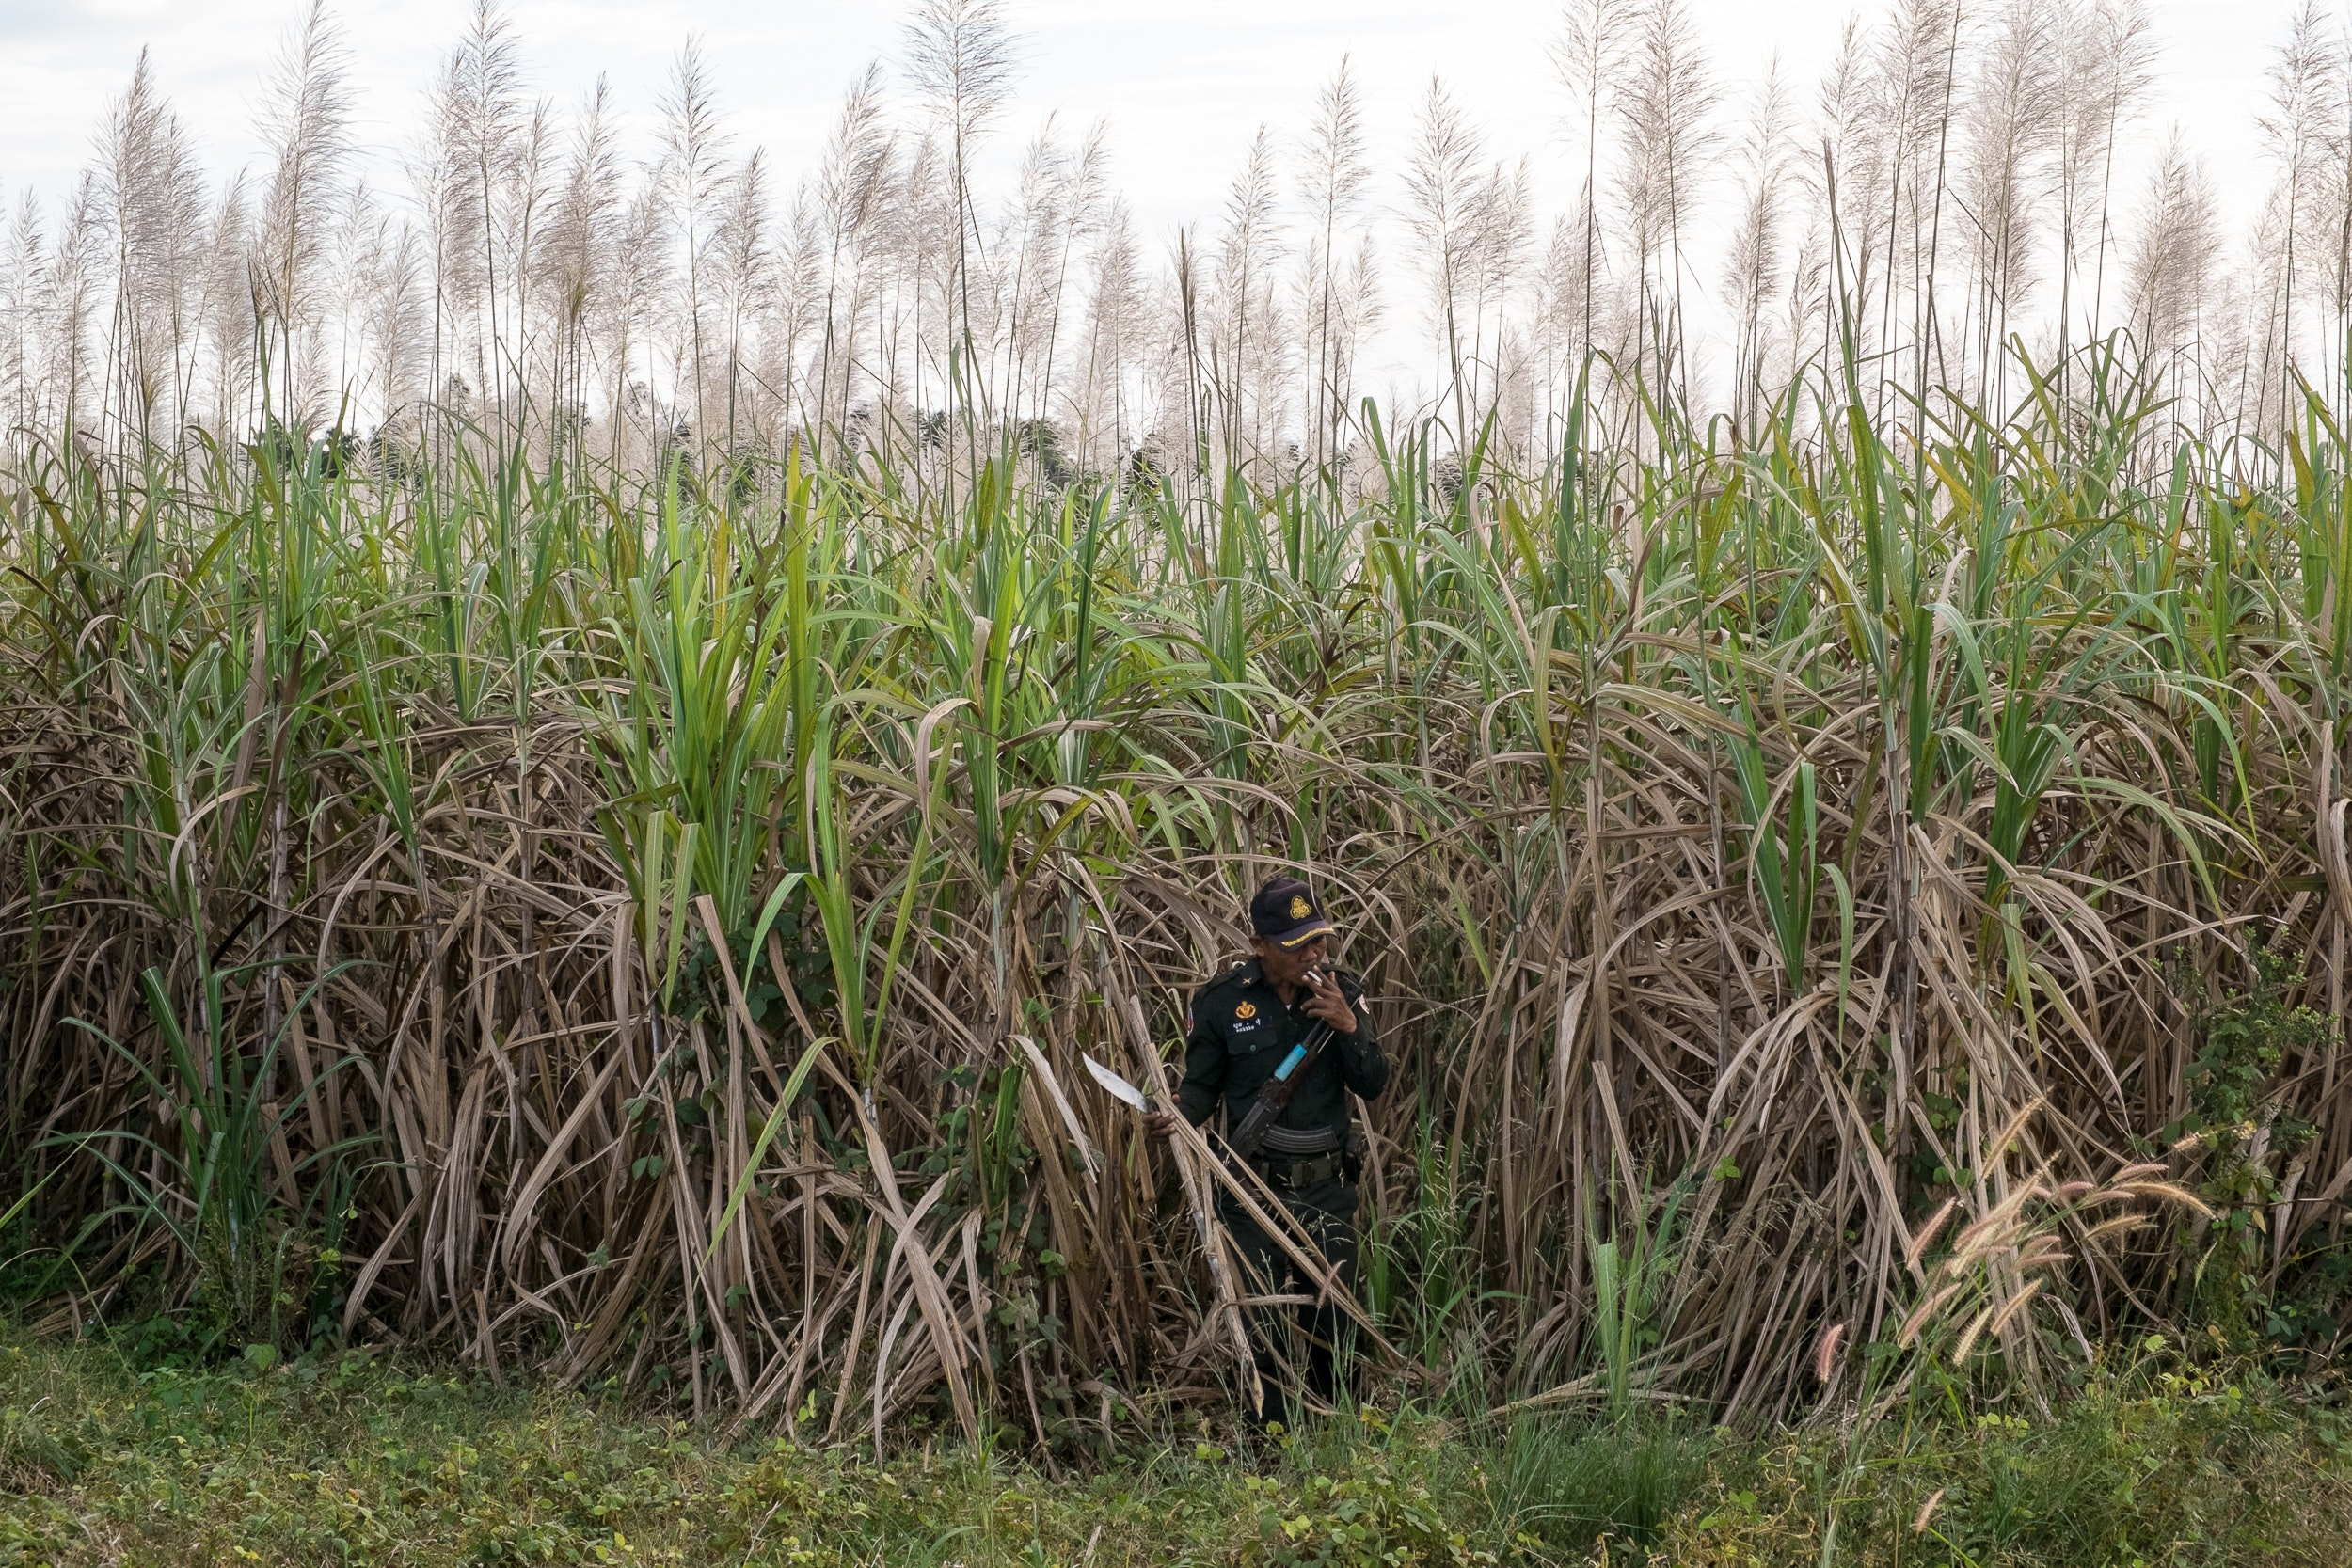 A ranger searches for evidence of illegal activities in a field